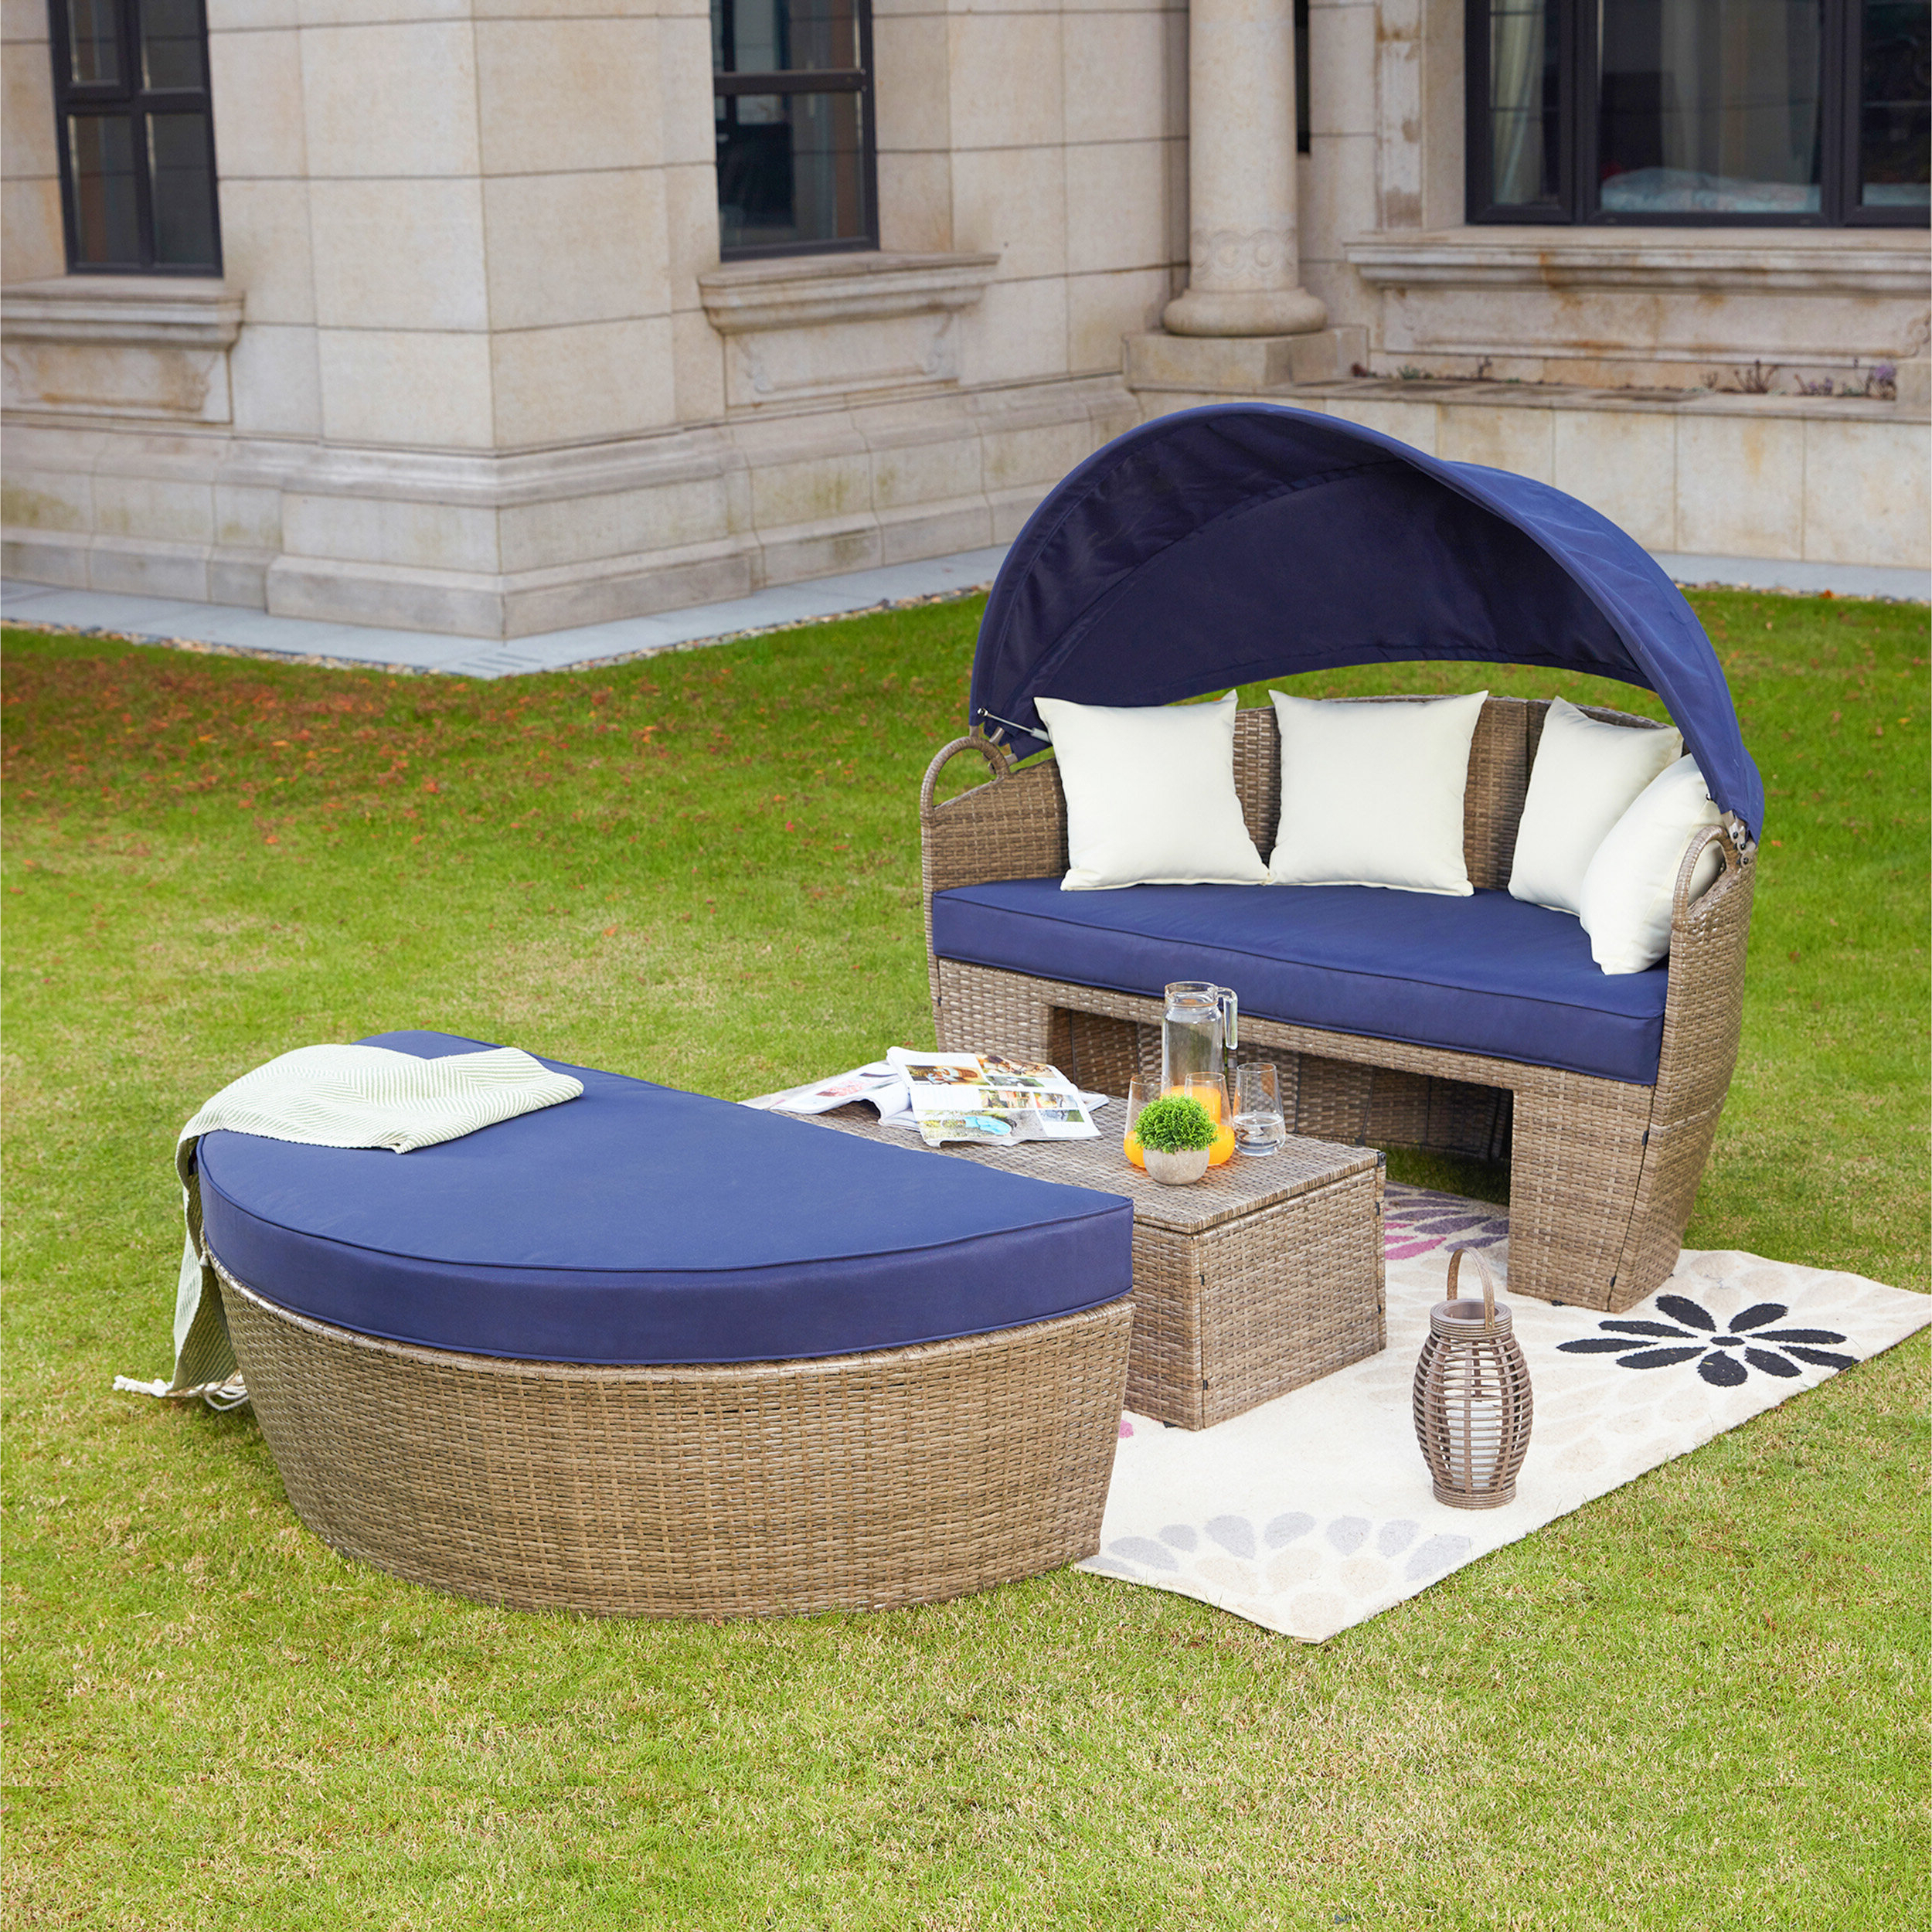 Beal Patio Daybeds With Cushions With Regard To Famous Fansler Patio Daybed With Cushions (View 6 of 25)